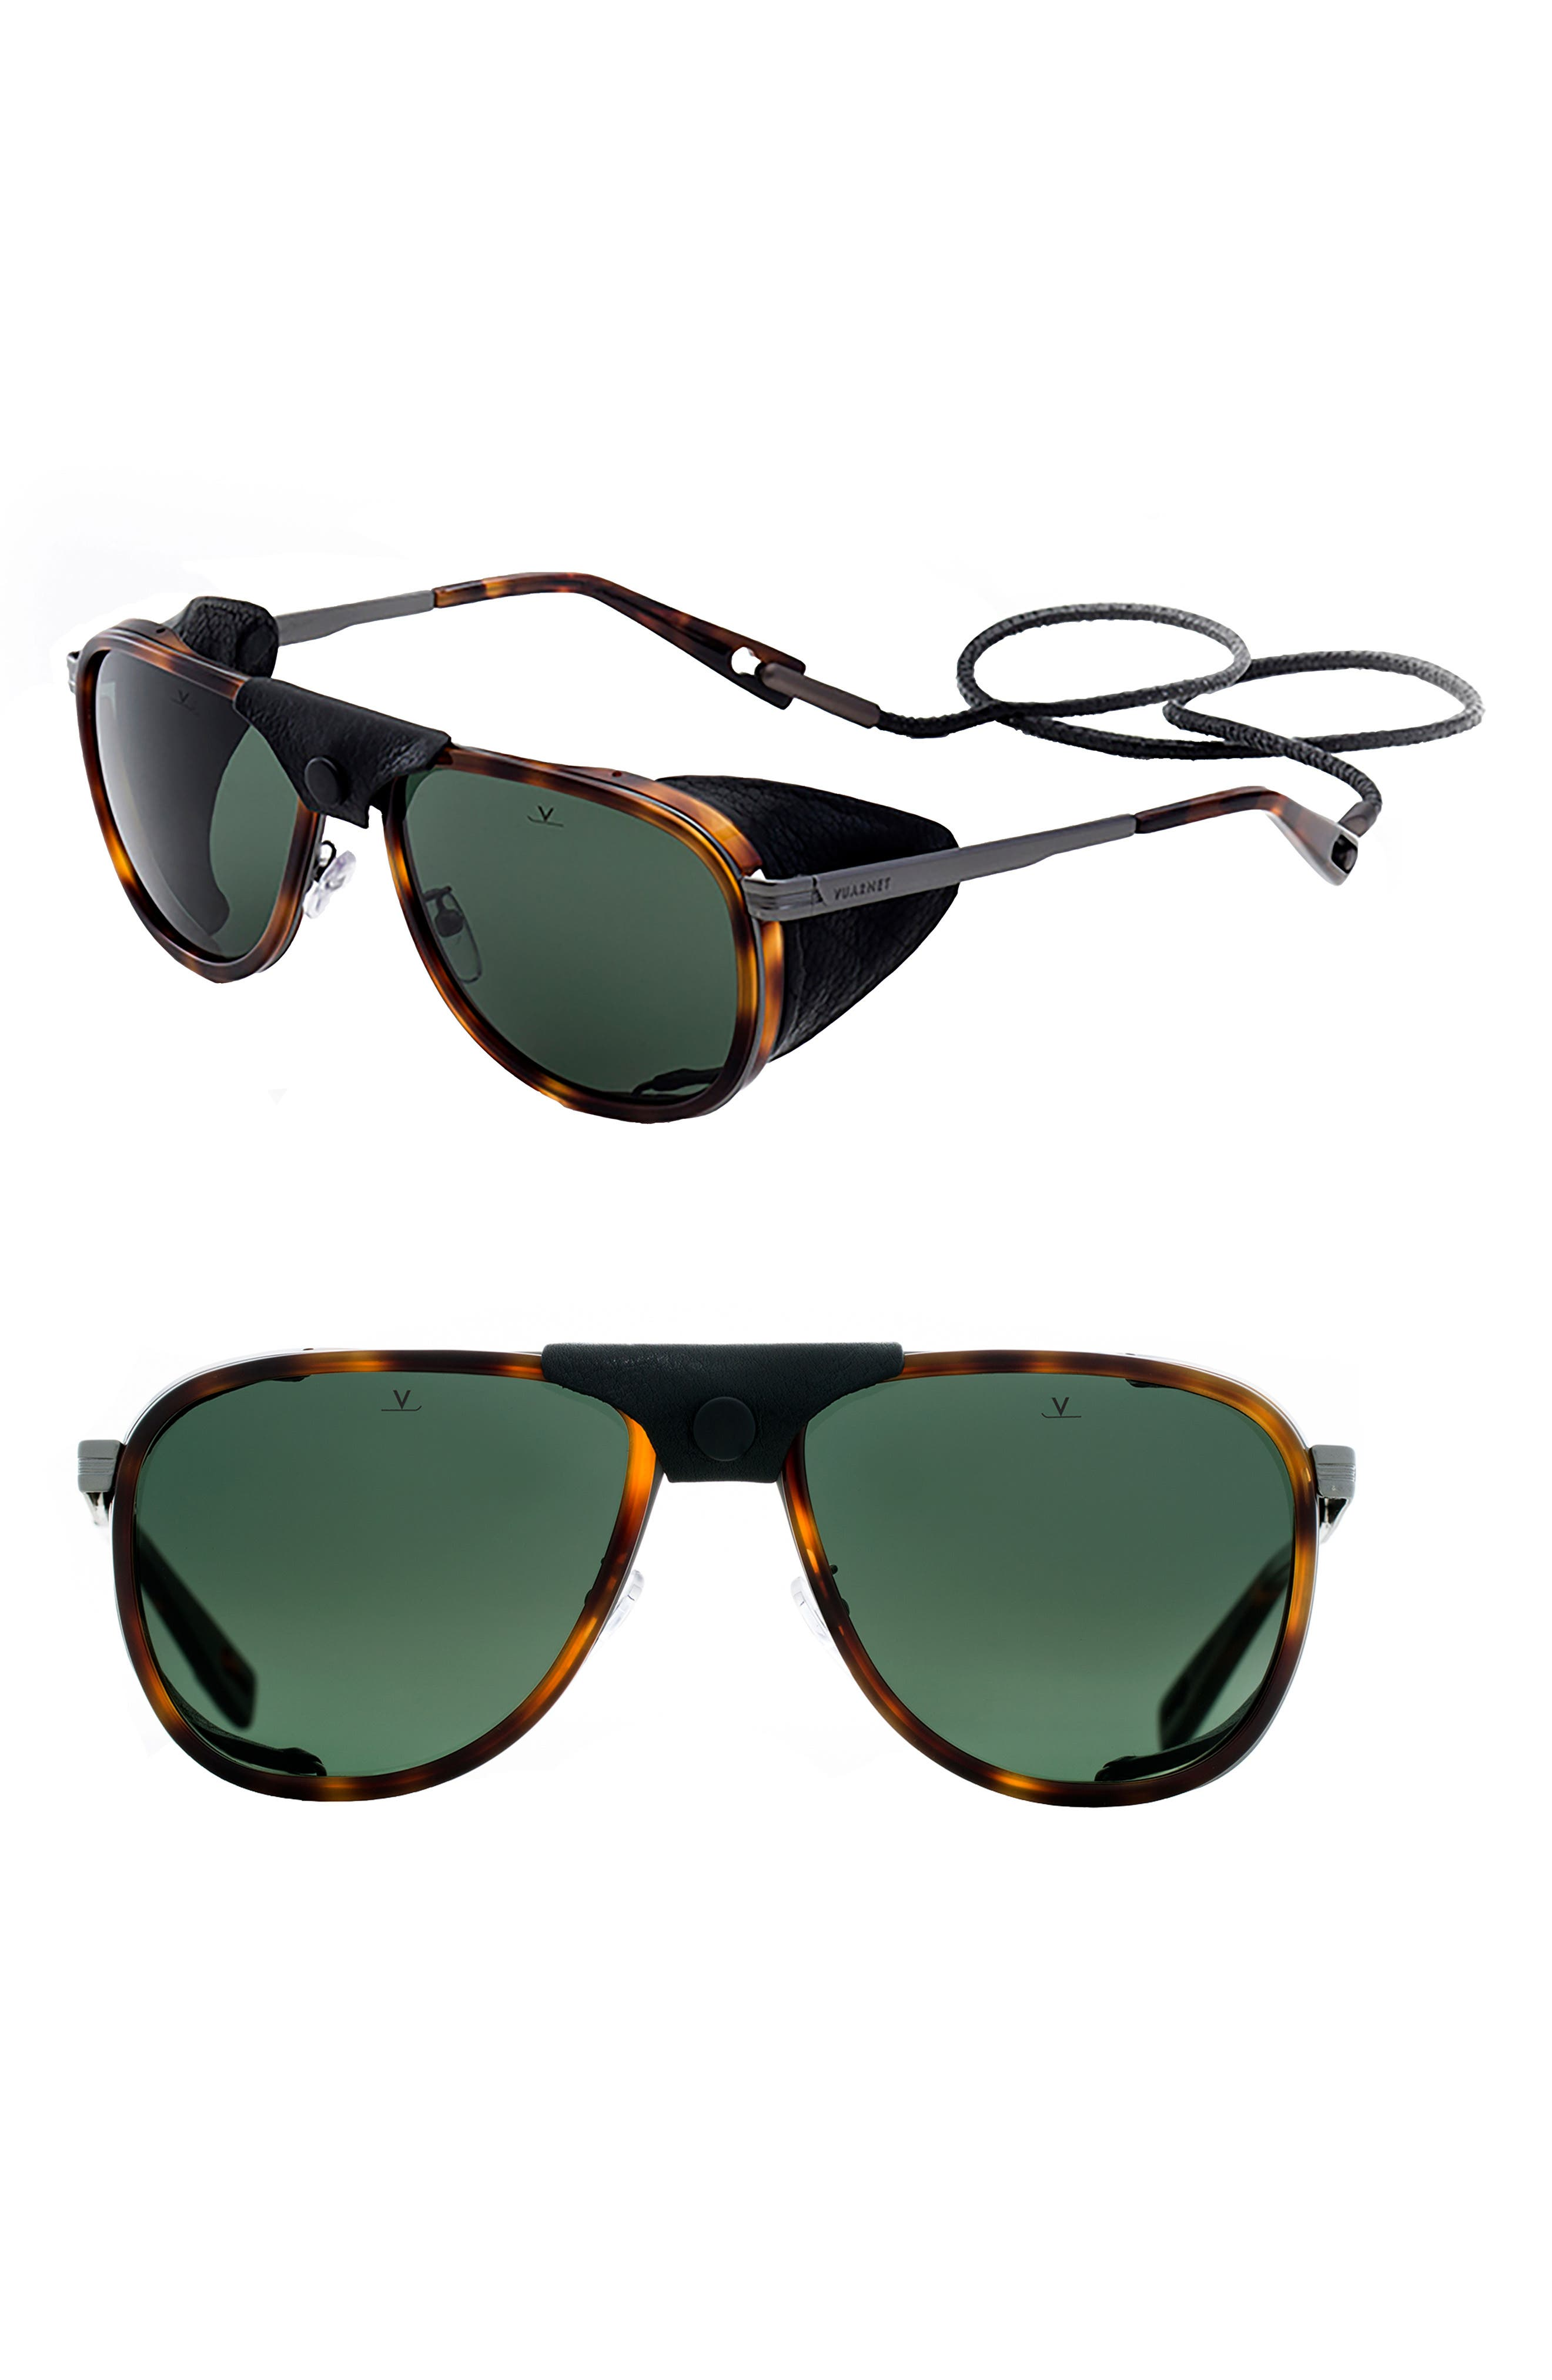 Men'S Glacier Xl Polarized Sunglasses W/ Removable Leather Side Case in Tortoise / Gun Metal